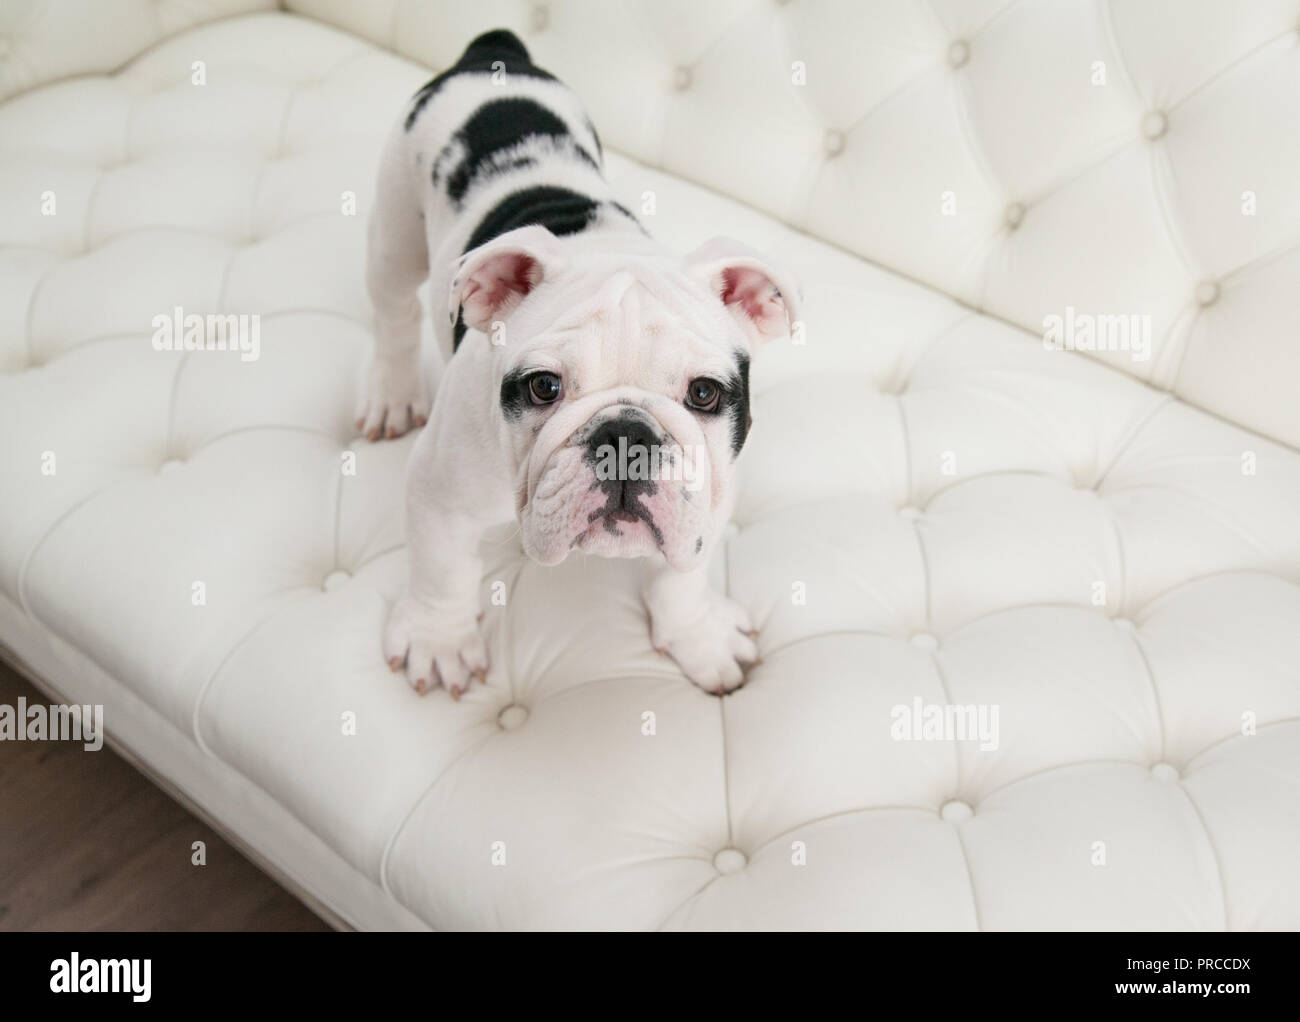 Black & white baby bulldog puppy dog stands up on a modern white pleated couch. He is looking up. - Stock Image